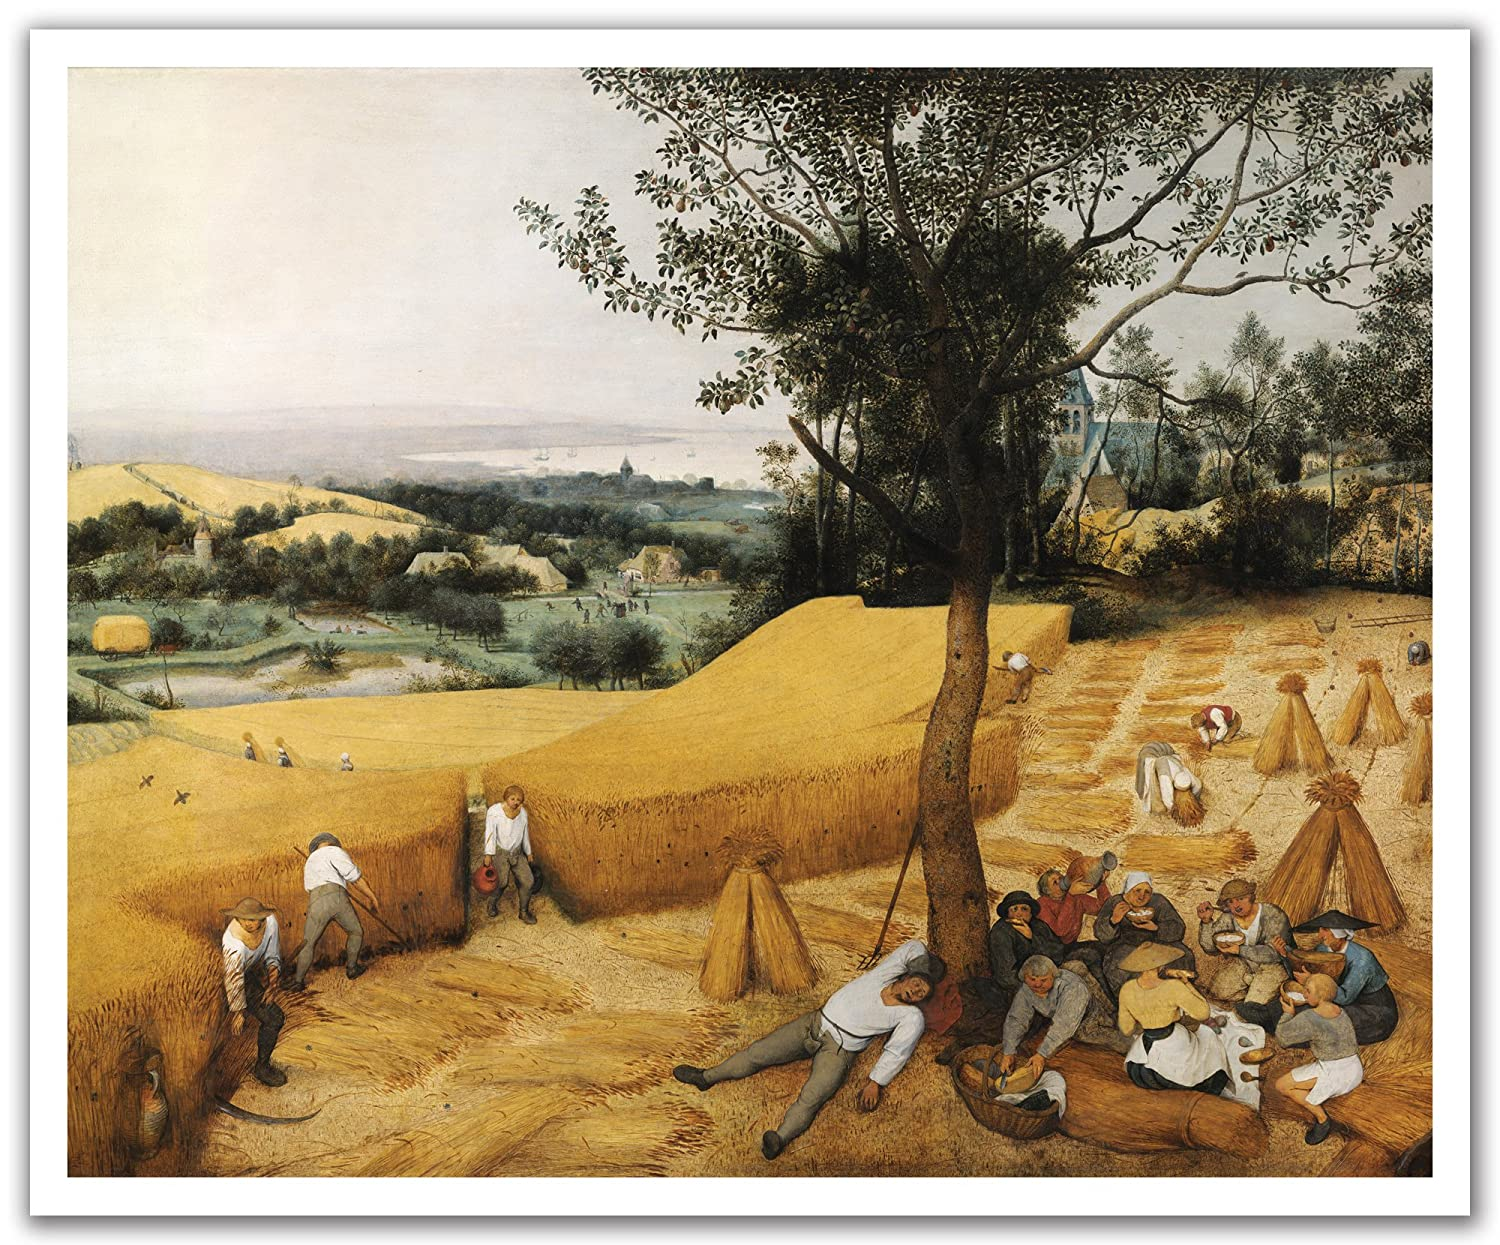 JP London POS2250 uStrip Peel and Stick Bruegel Wall Decal Sticker Mural The Harvesters Painting 24-Inch by 19.75-Inch